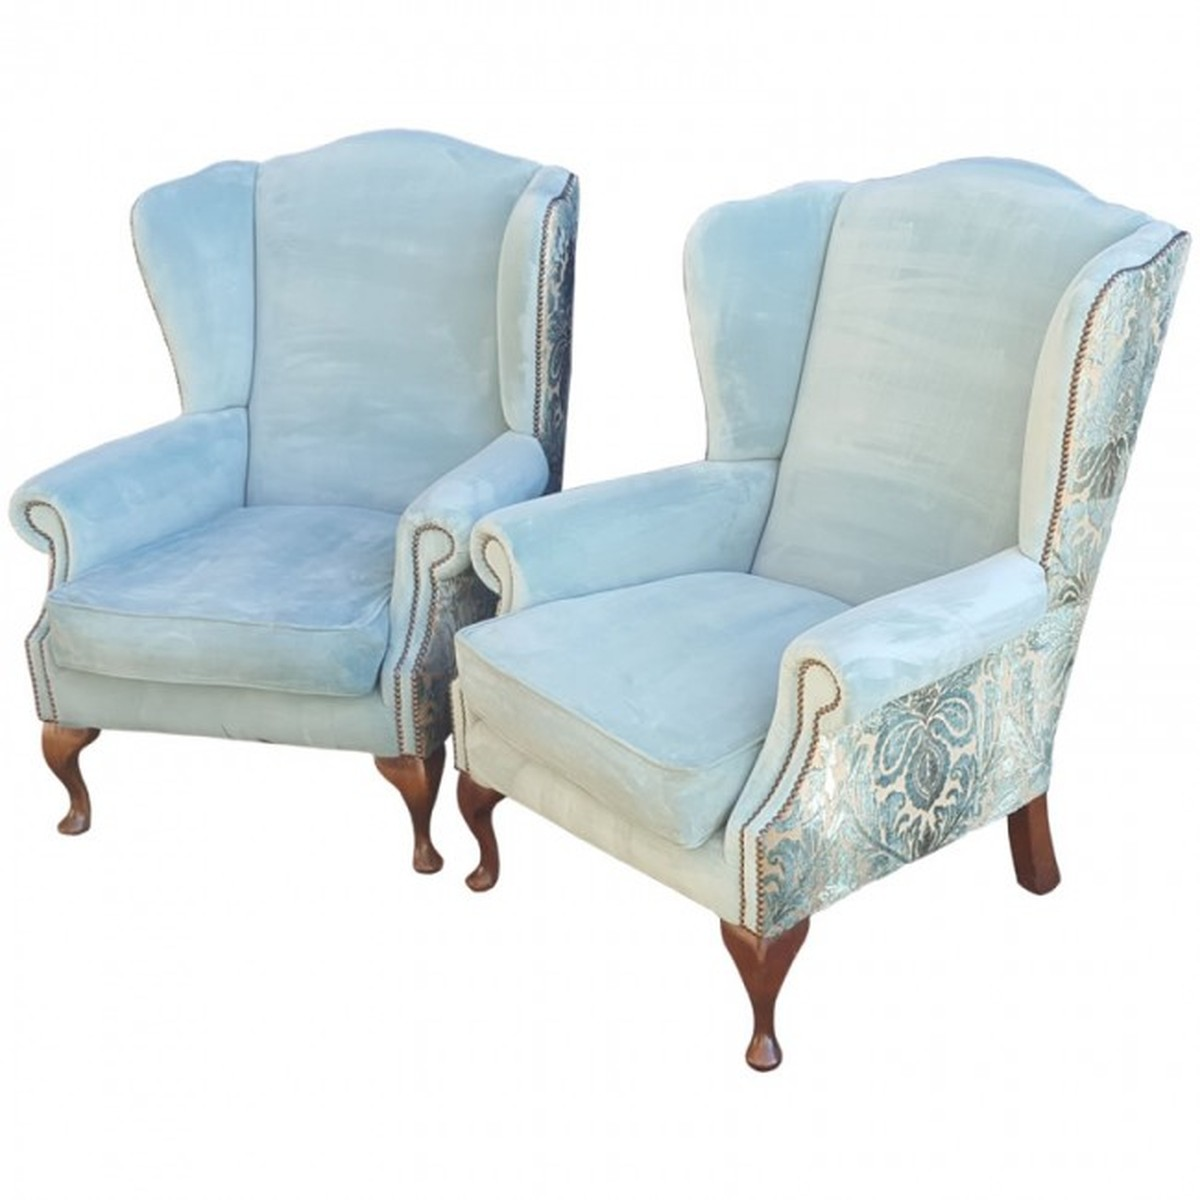 Secondhand hotel furniture lounge and bar luxury pair for Furniture armchairs